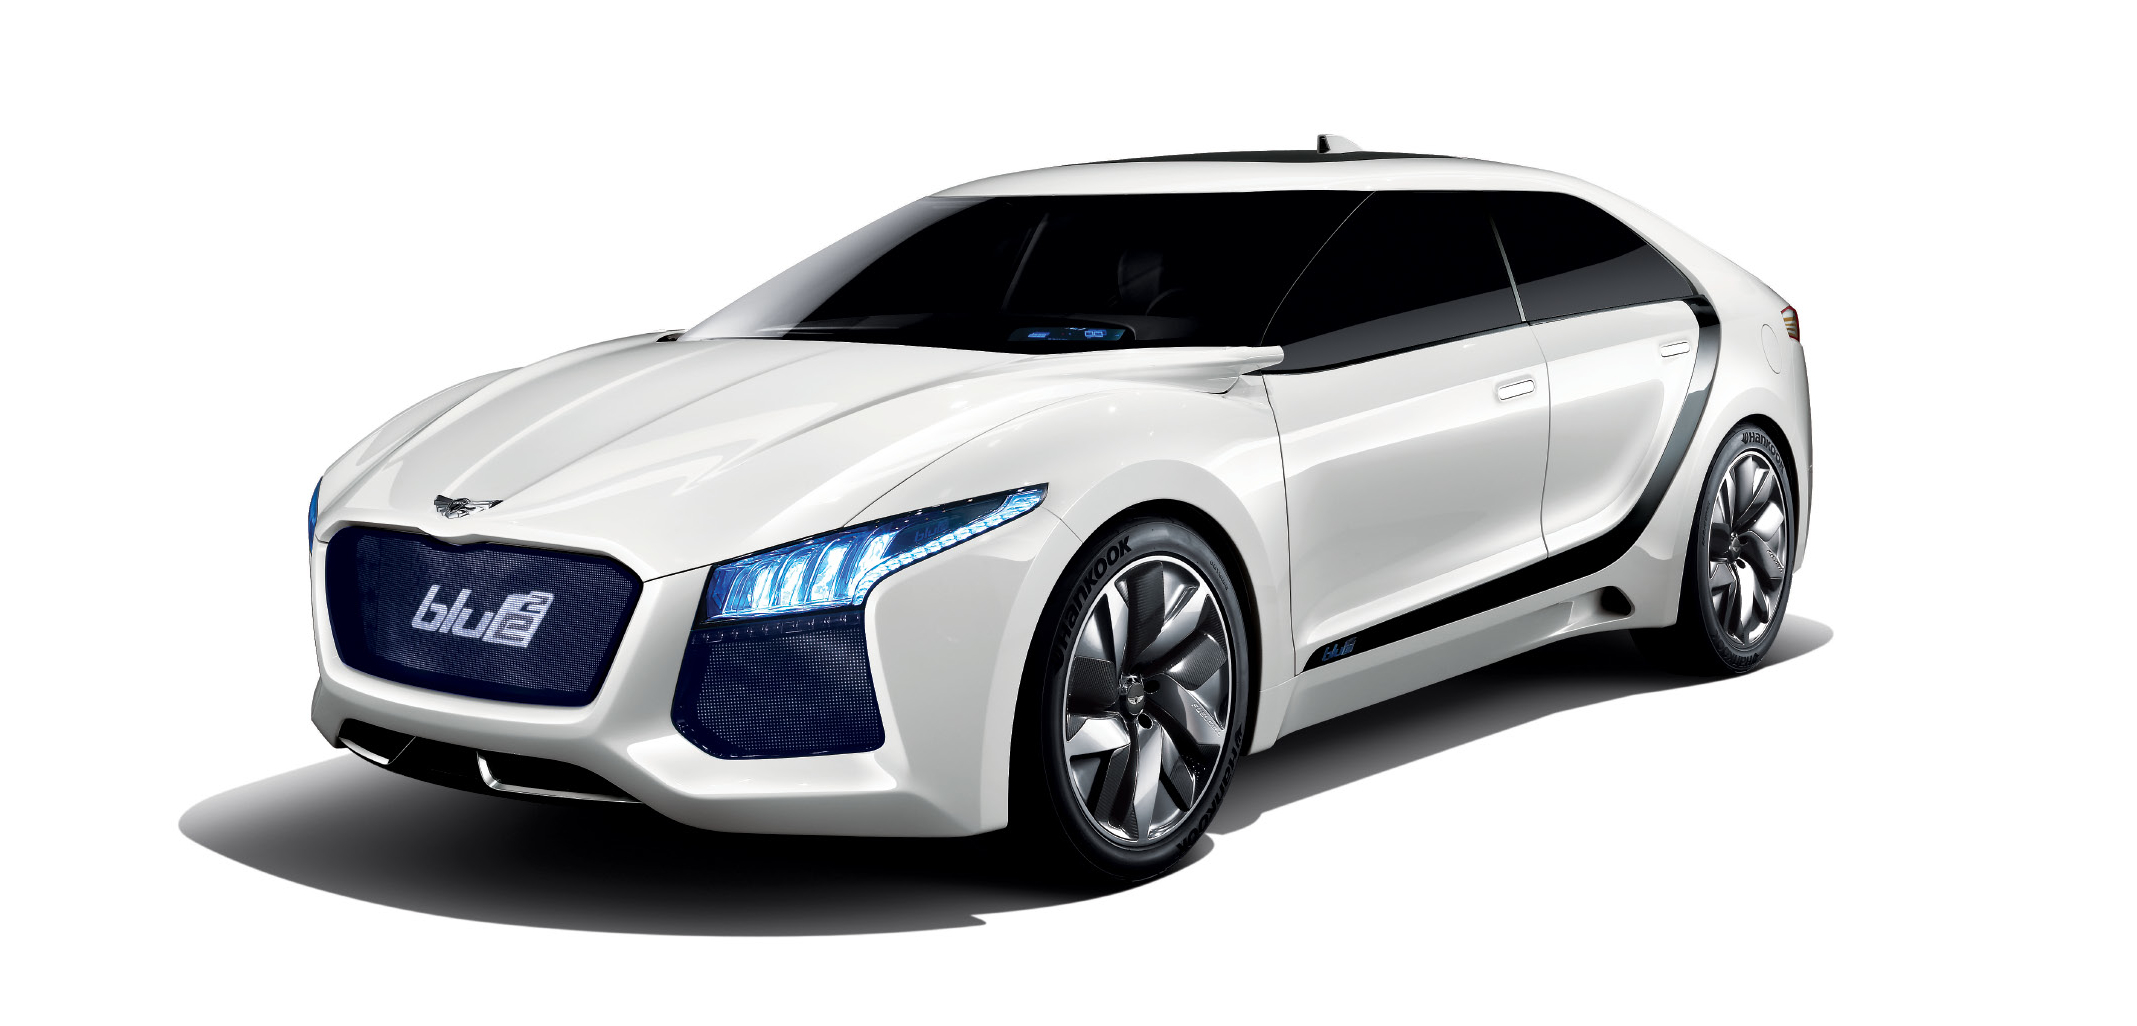 Hyundai Blue Square Concept Unveils Hydrogen Fuel Cell Wallpapers Download